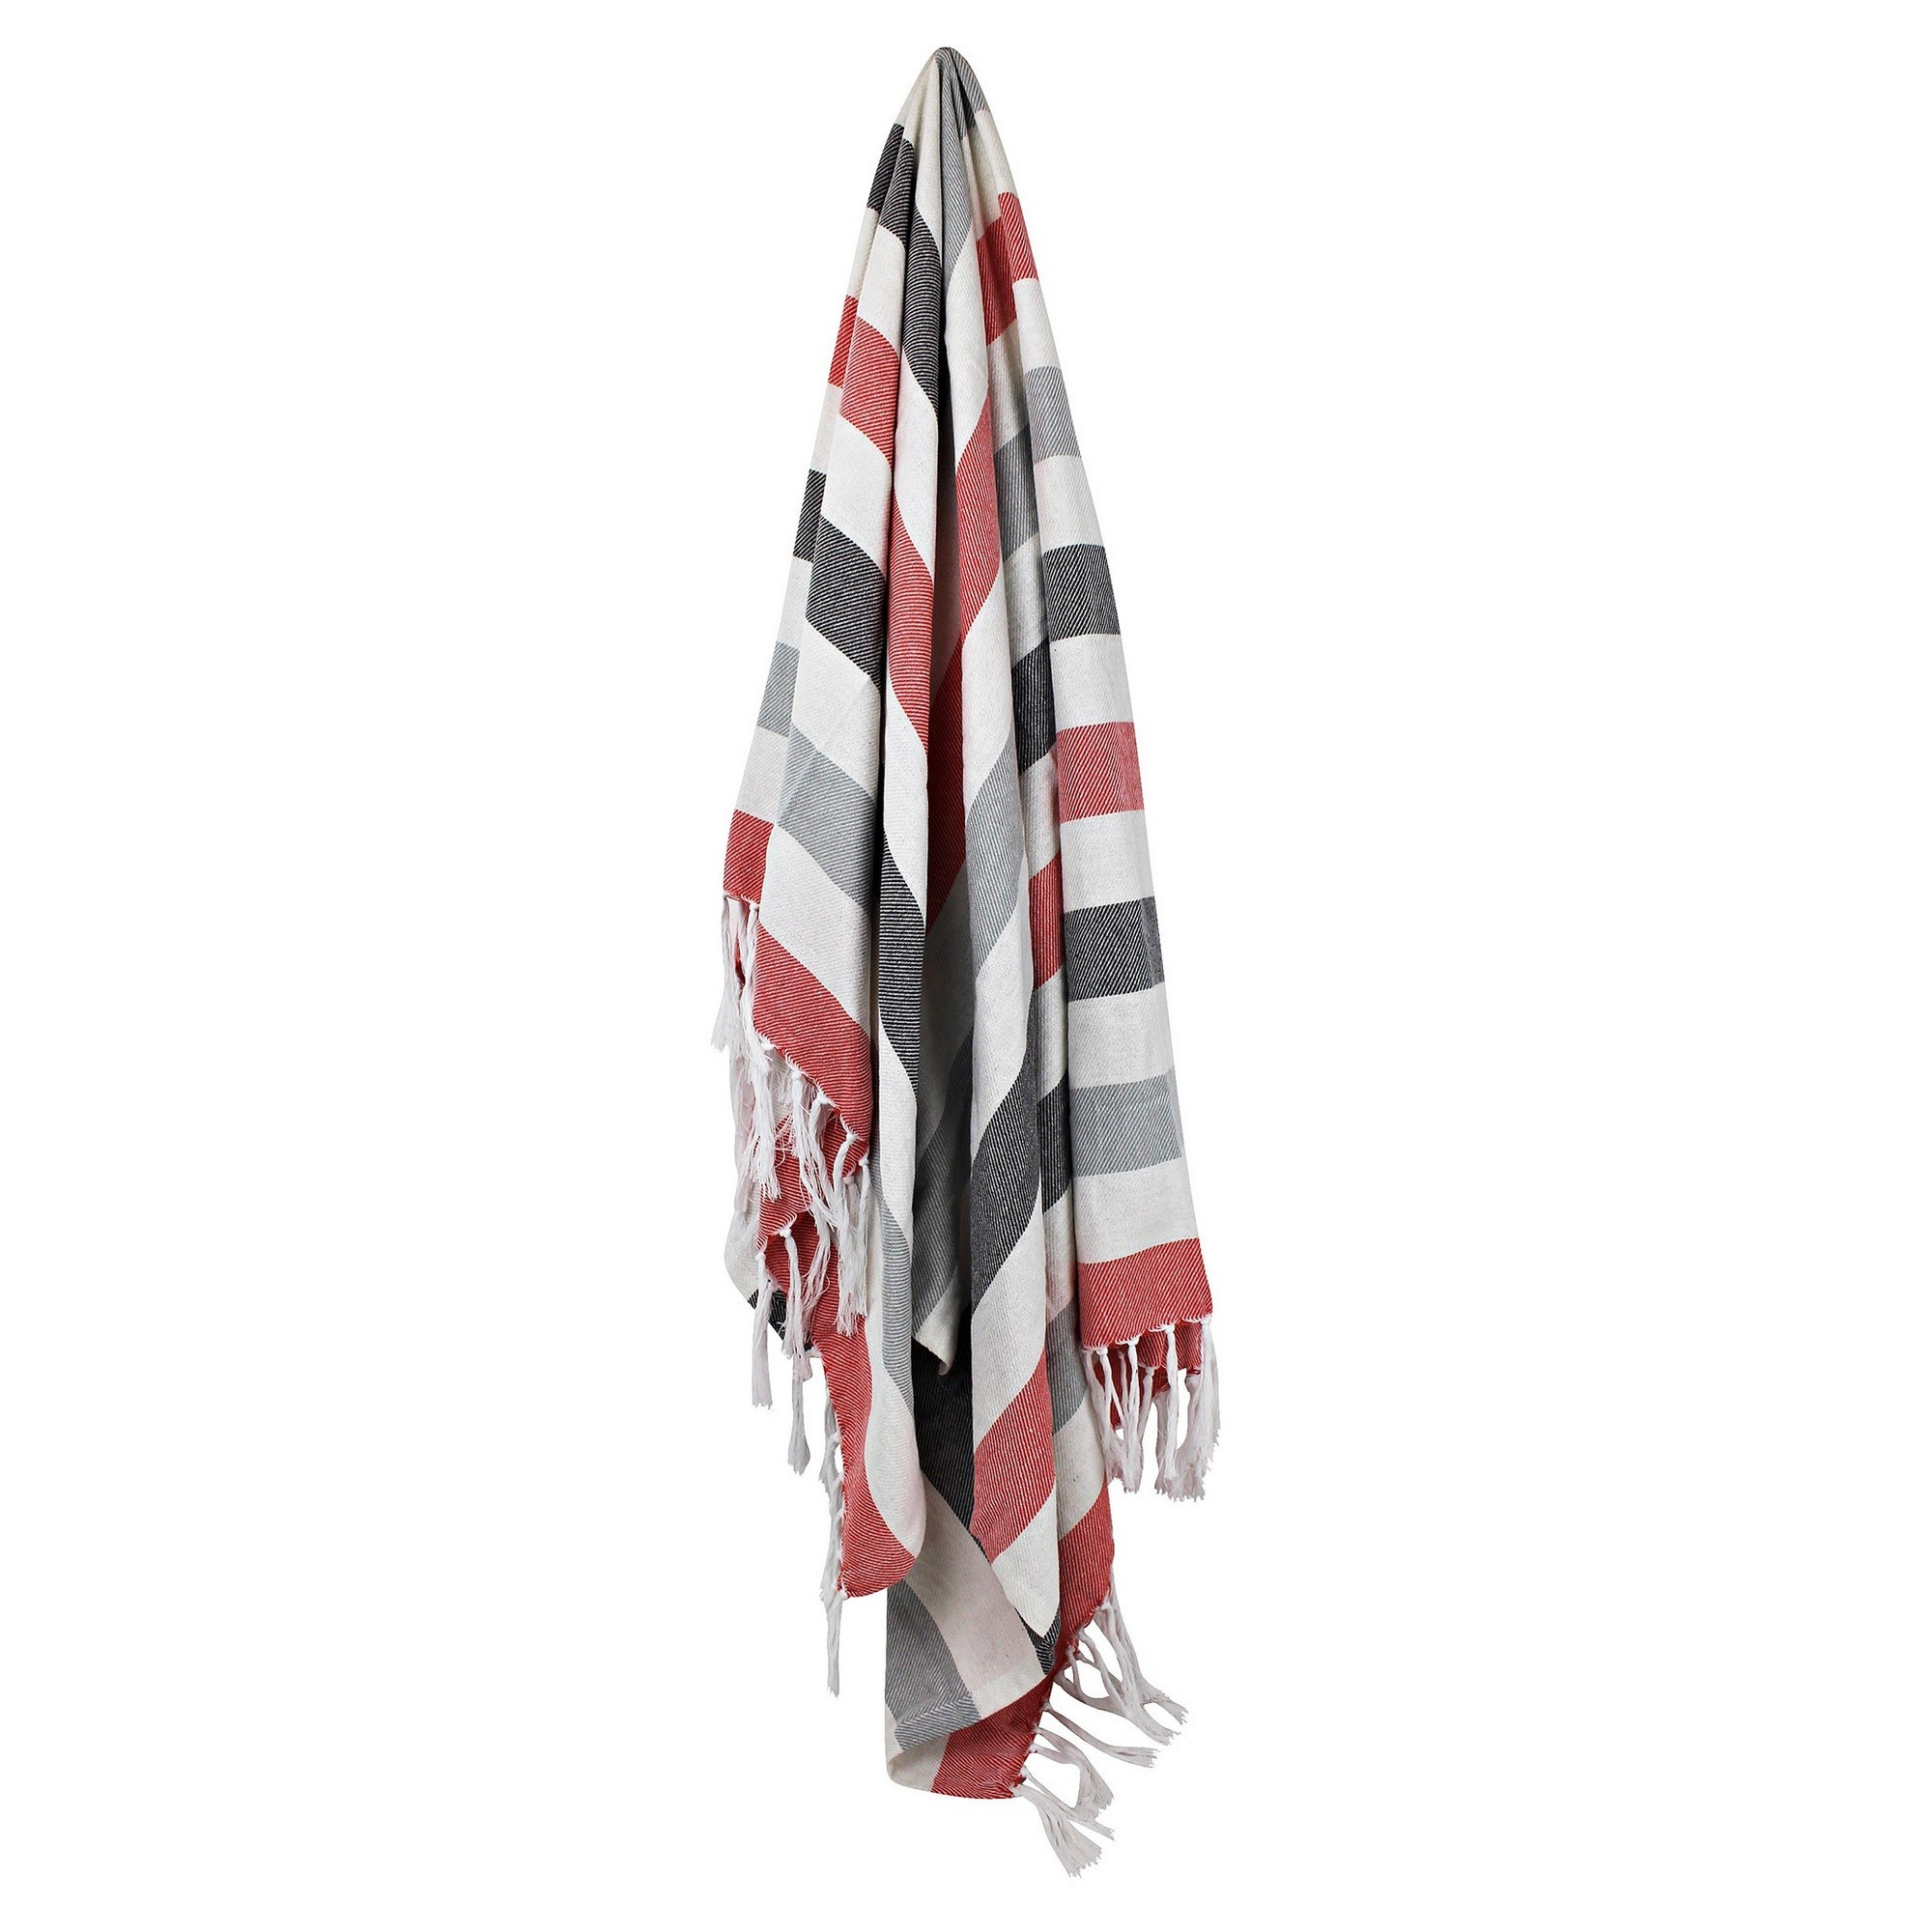 Odyssey Living Beach Cotton Throw, 125x150cm, Red